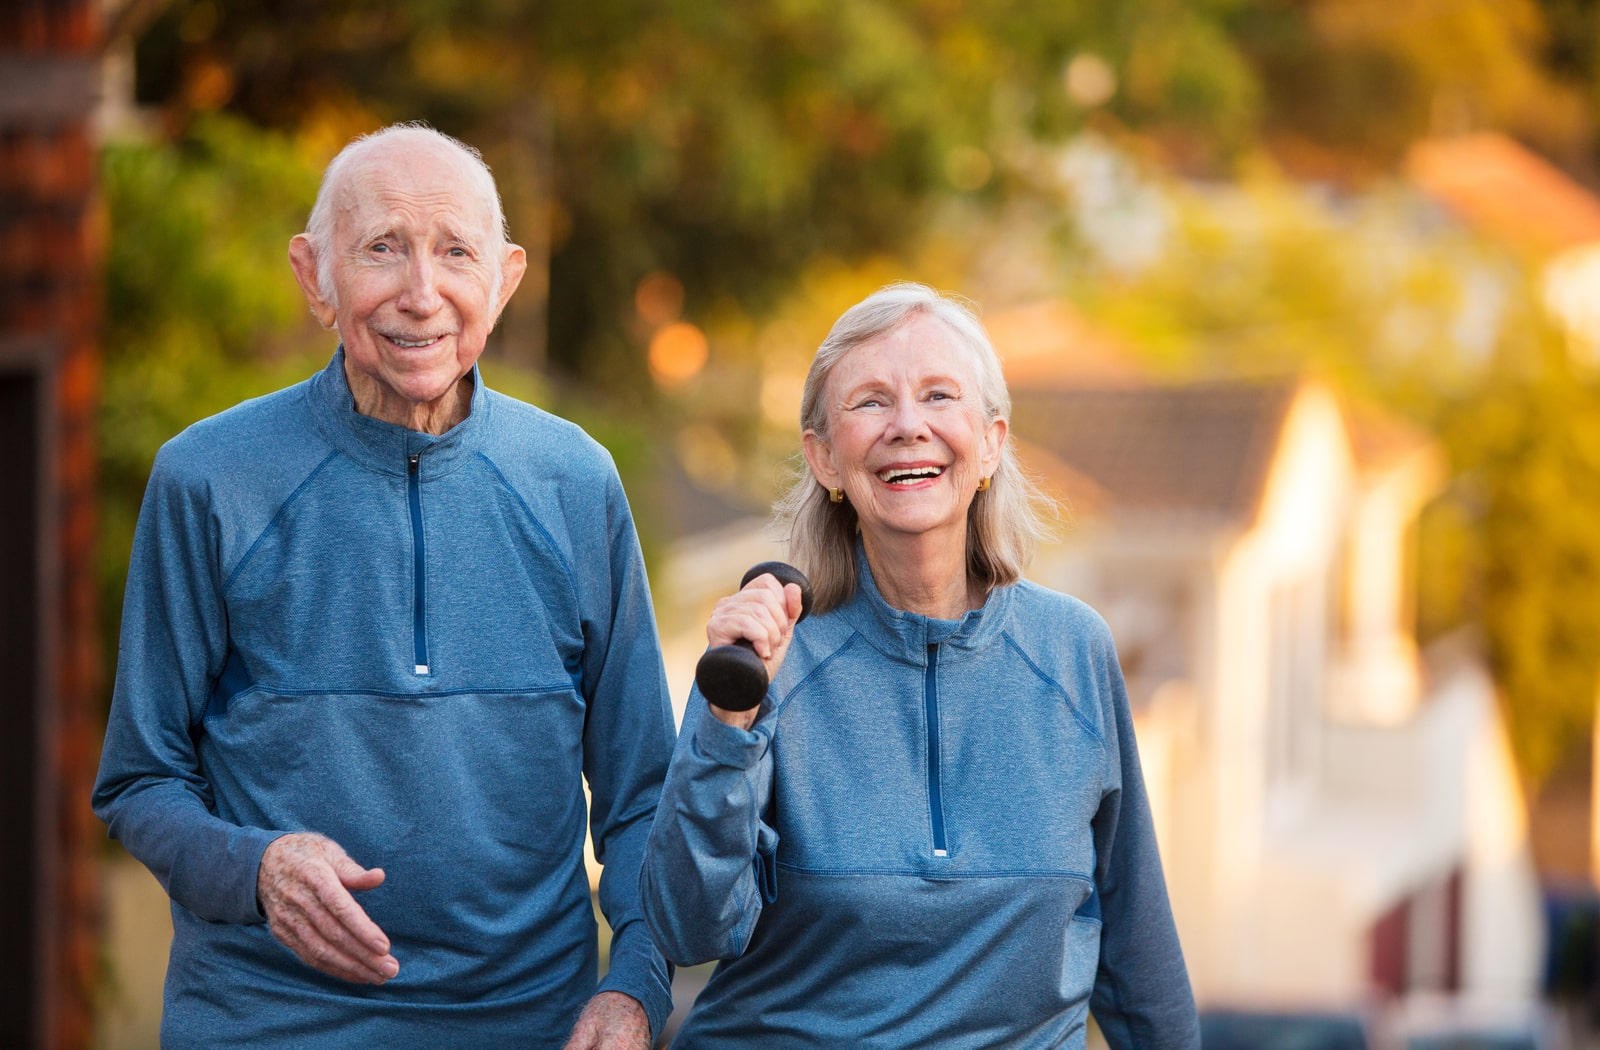 A pair of seniors in matching blue tracksuits exercising outdoors at their assisted living community